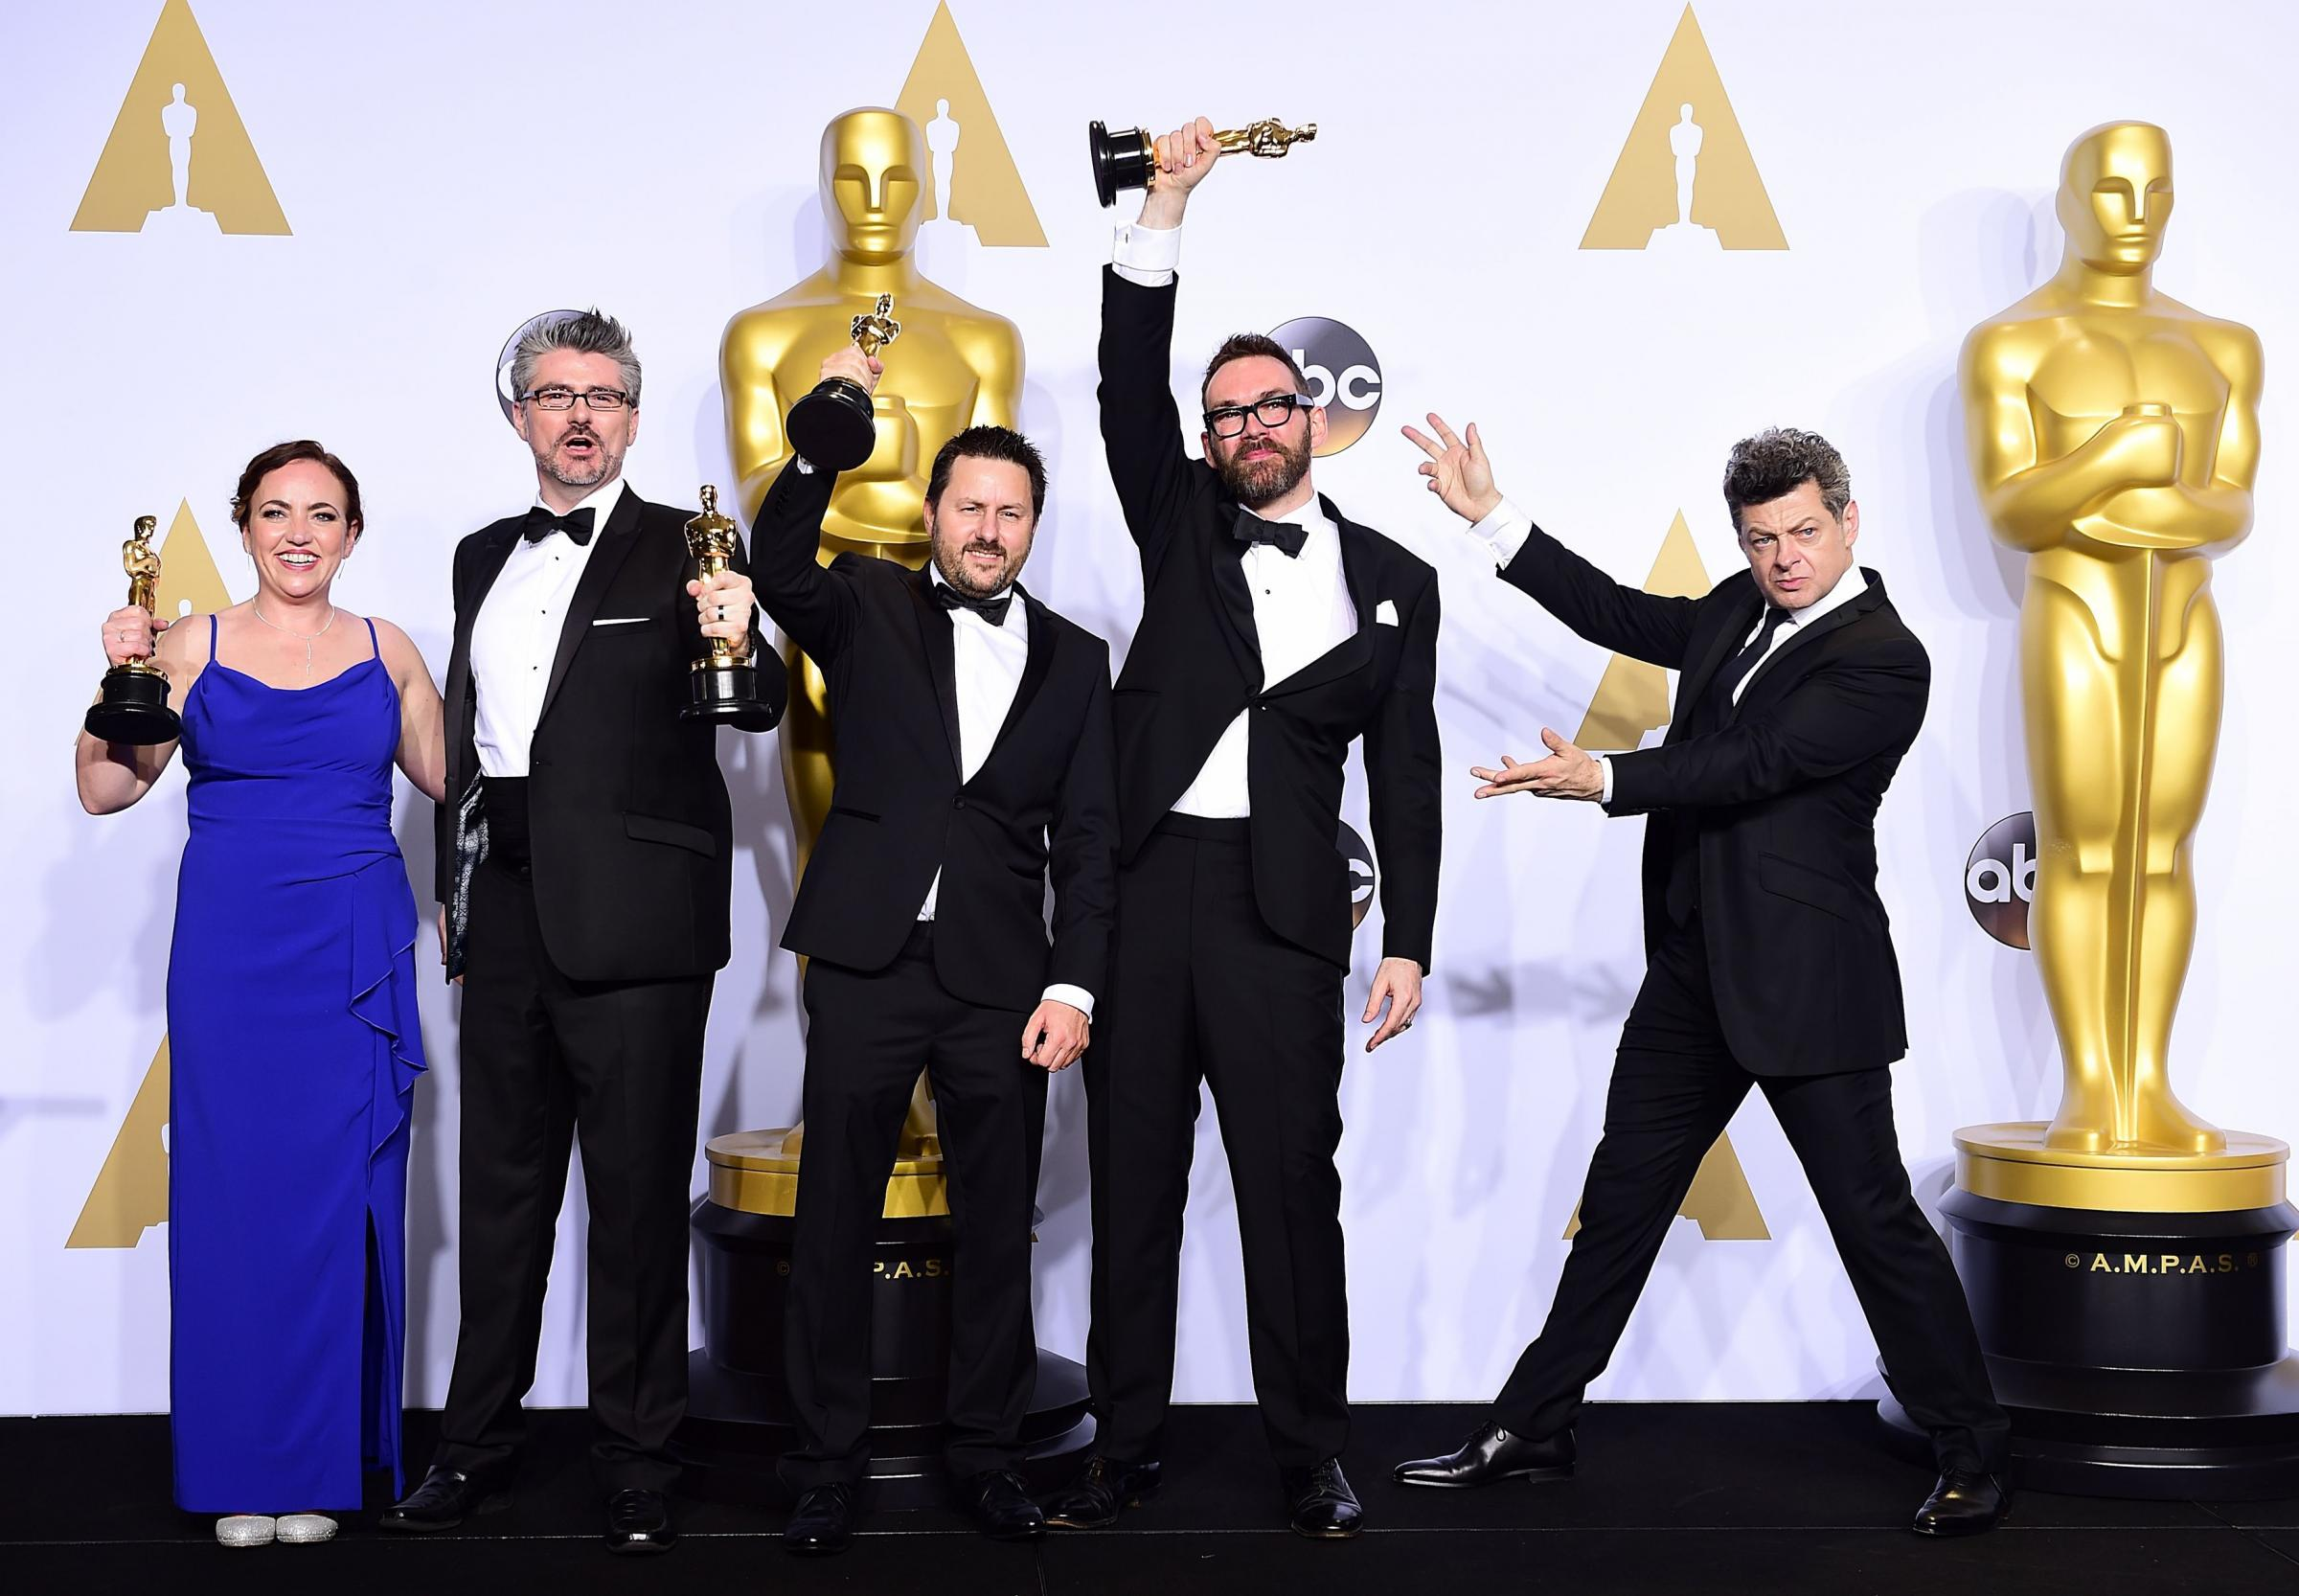 Bournemouth University graduates win visual effects Oscar, Mark Ardington, second from left